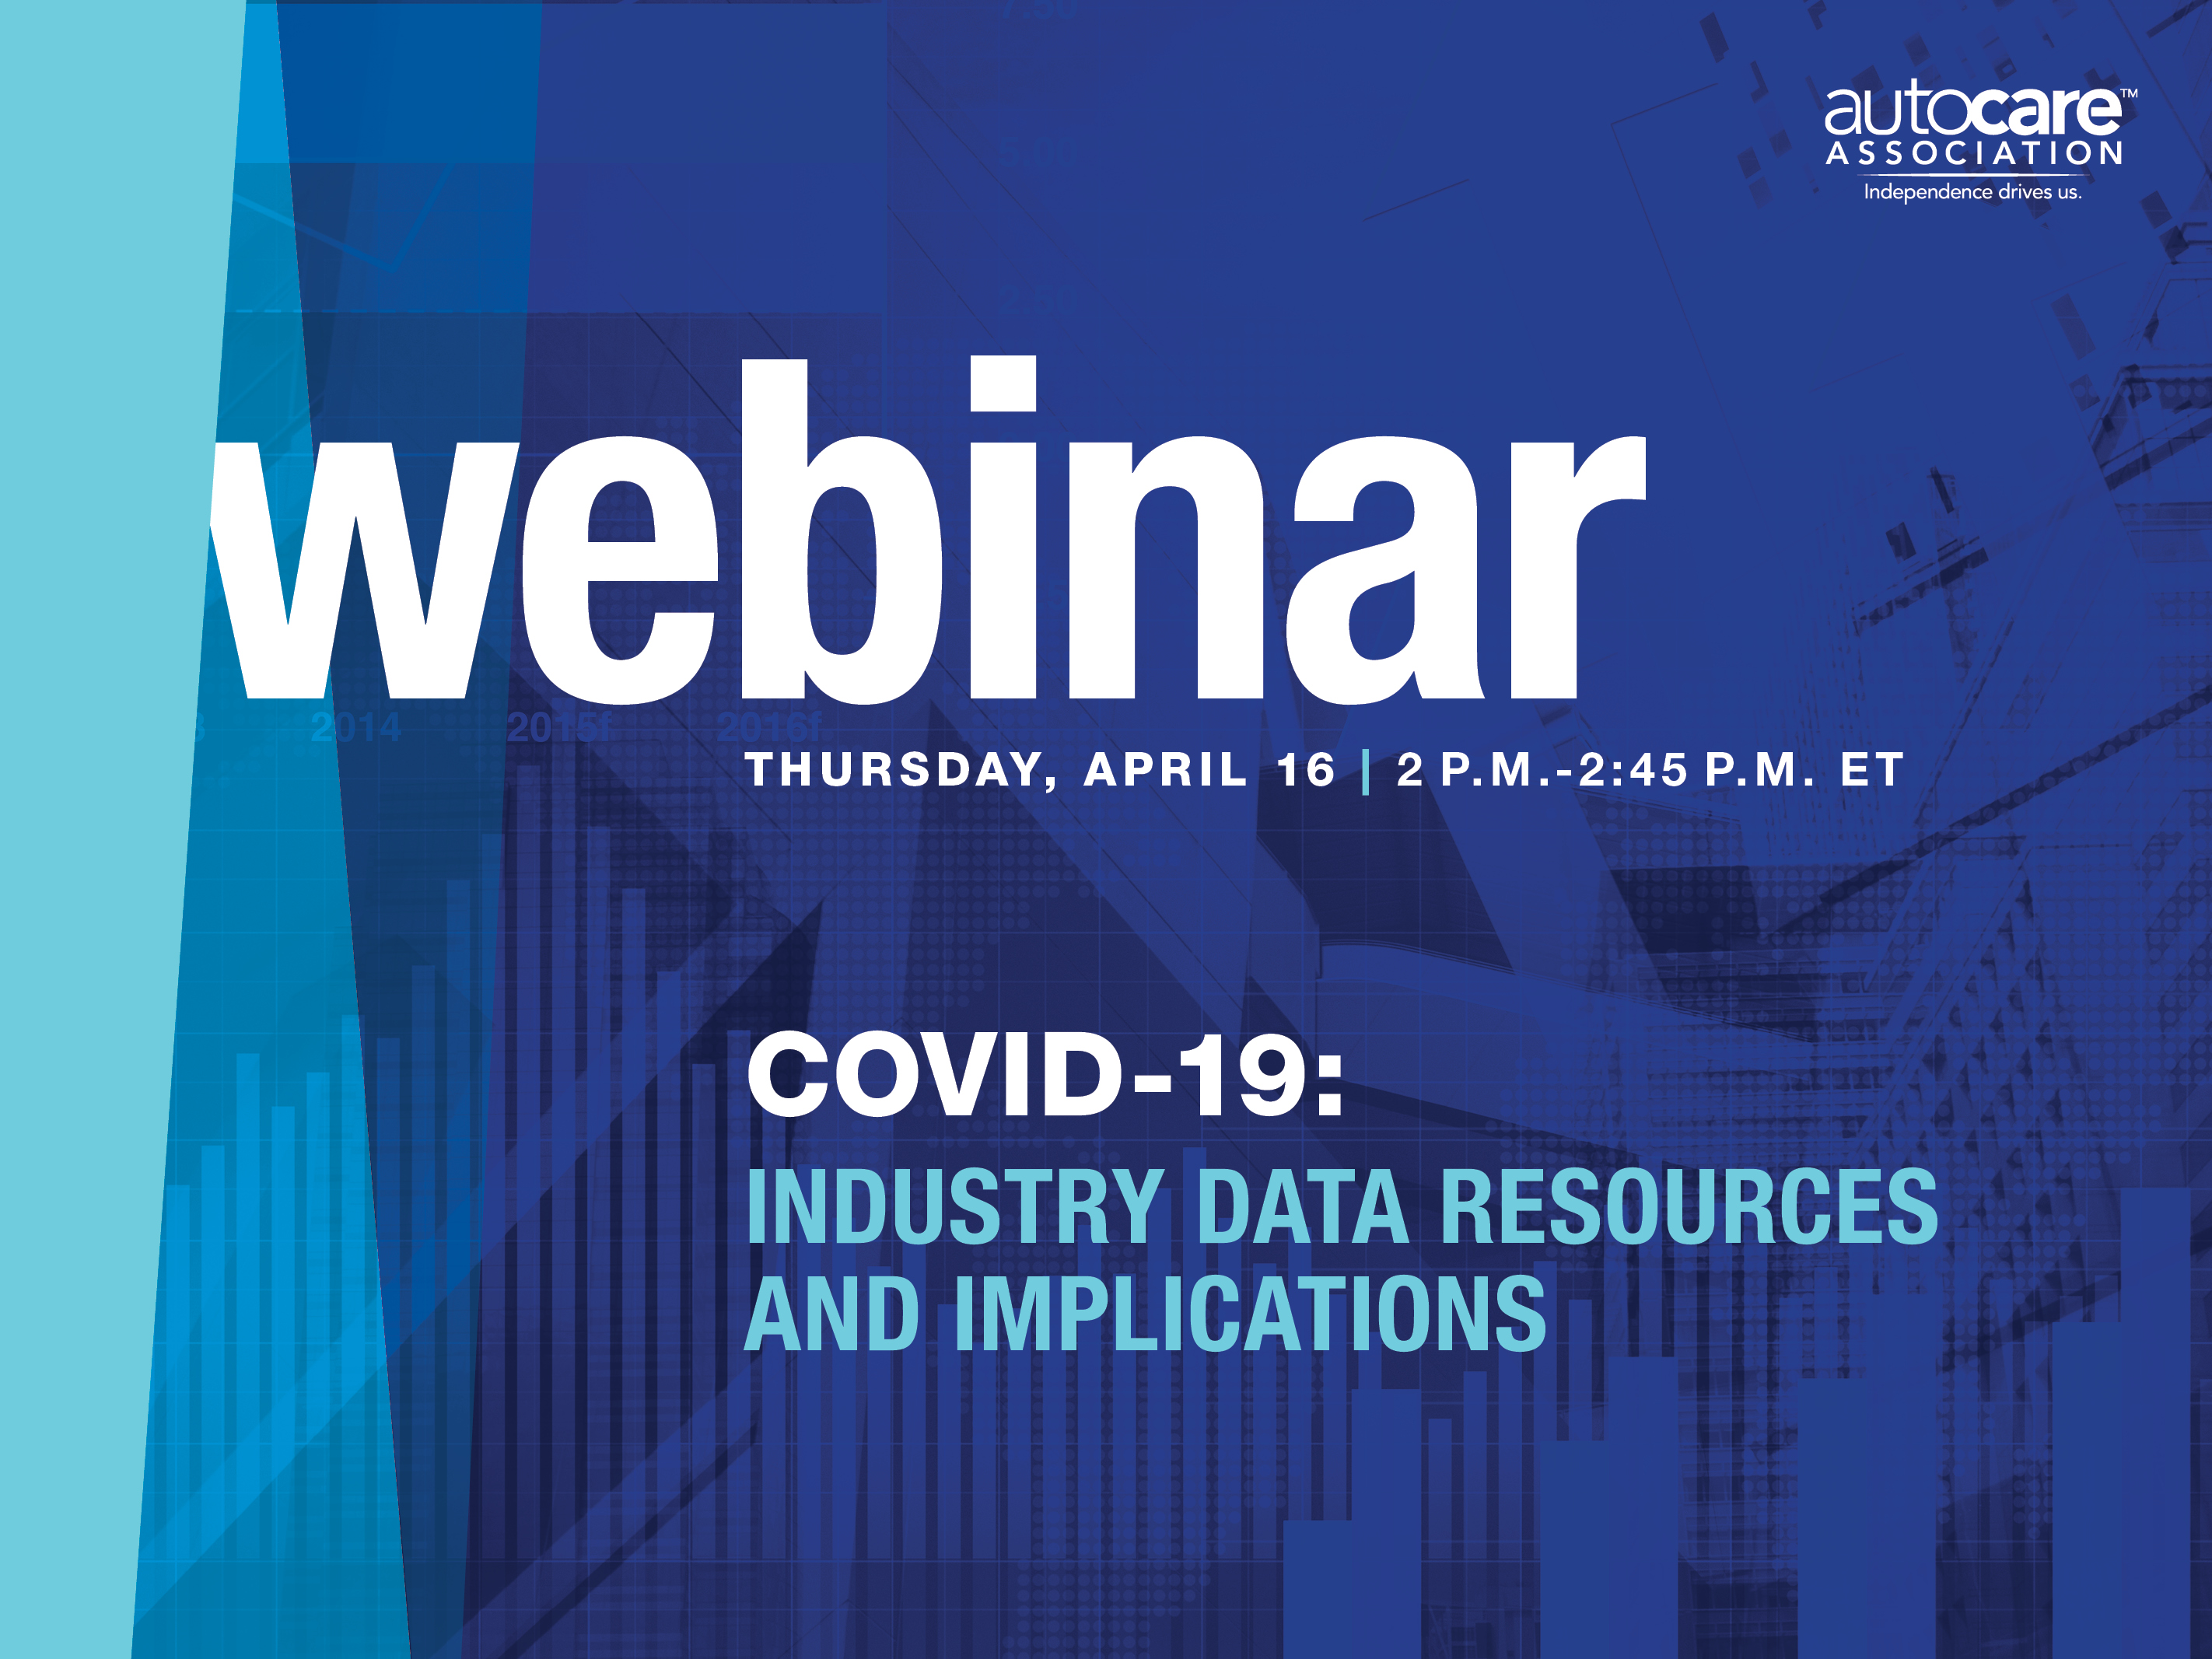 COVID-19: Industry Data Resources and Implications